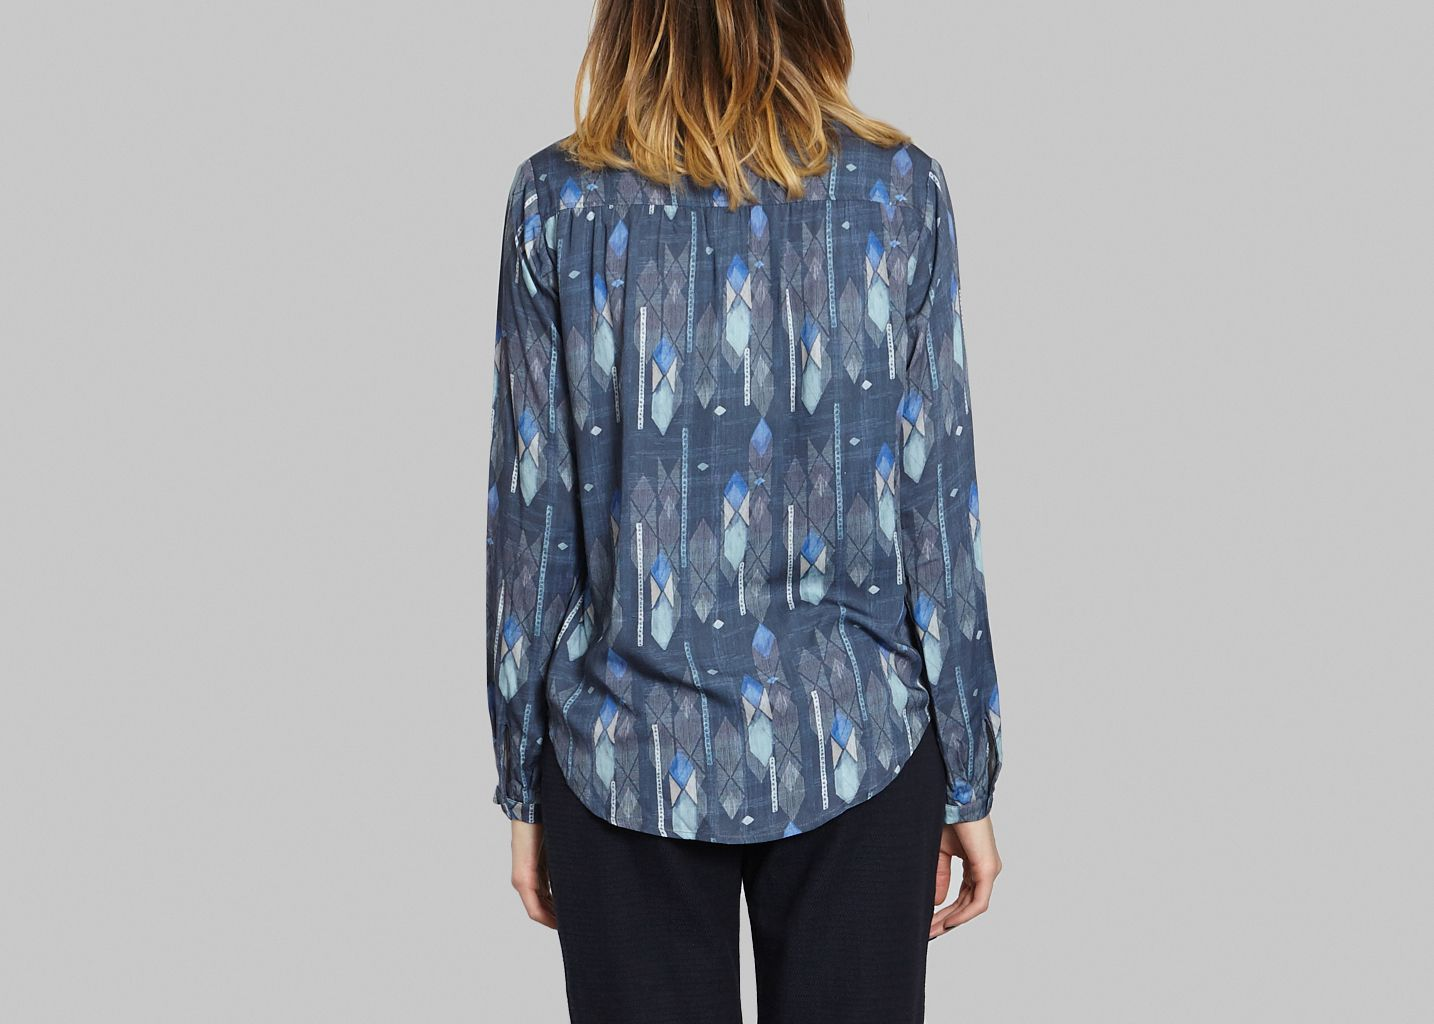 Blouse Hupper Frisco - Tinsels